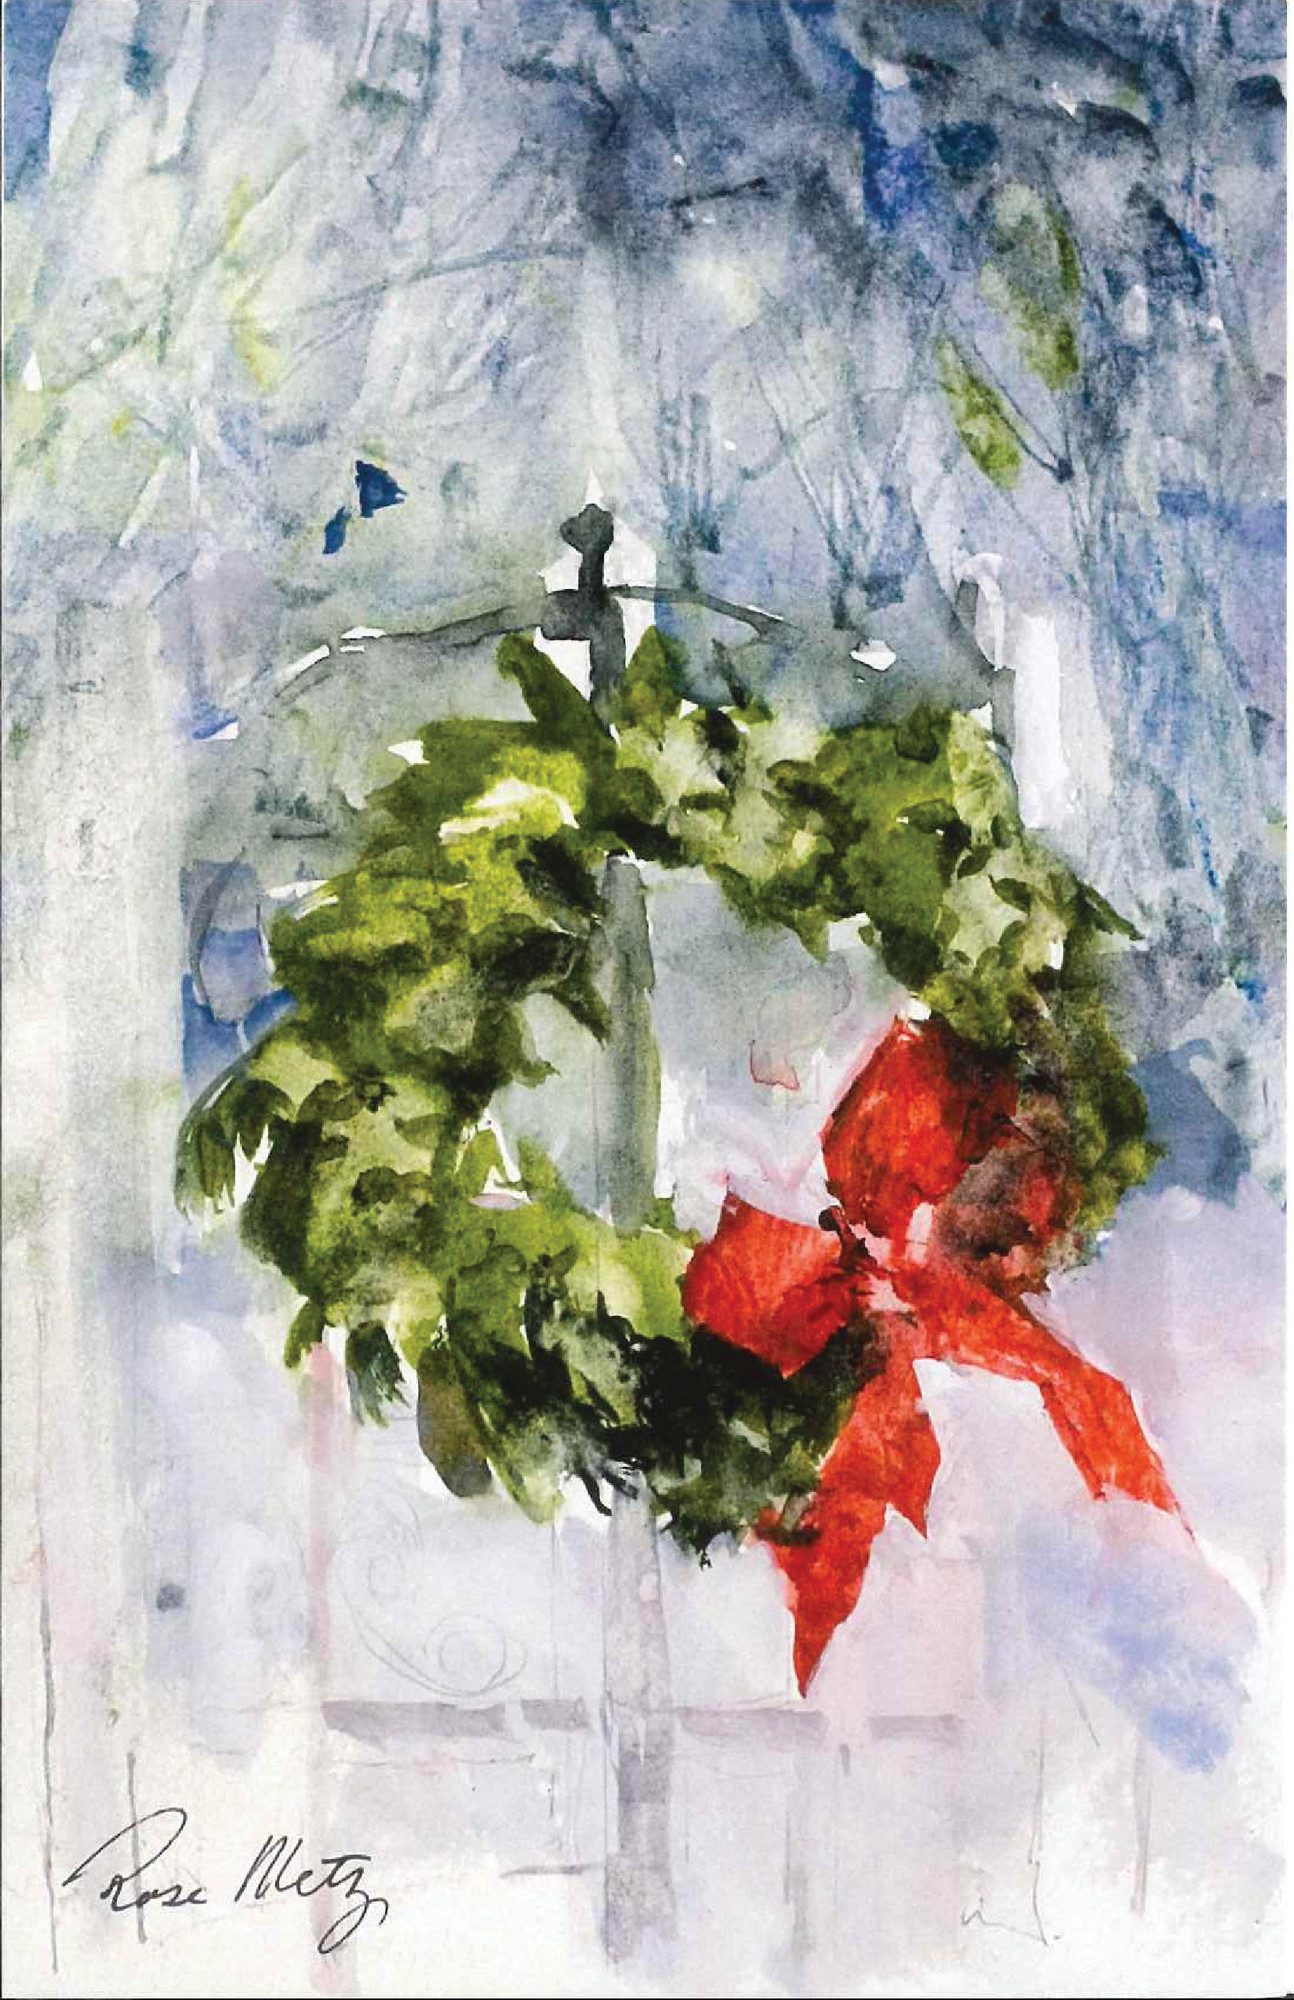 """Wreath"" by the late Rose Metz is the cover for an RSVP Christmas card."